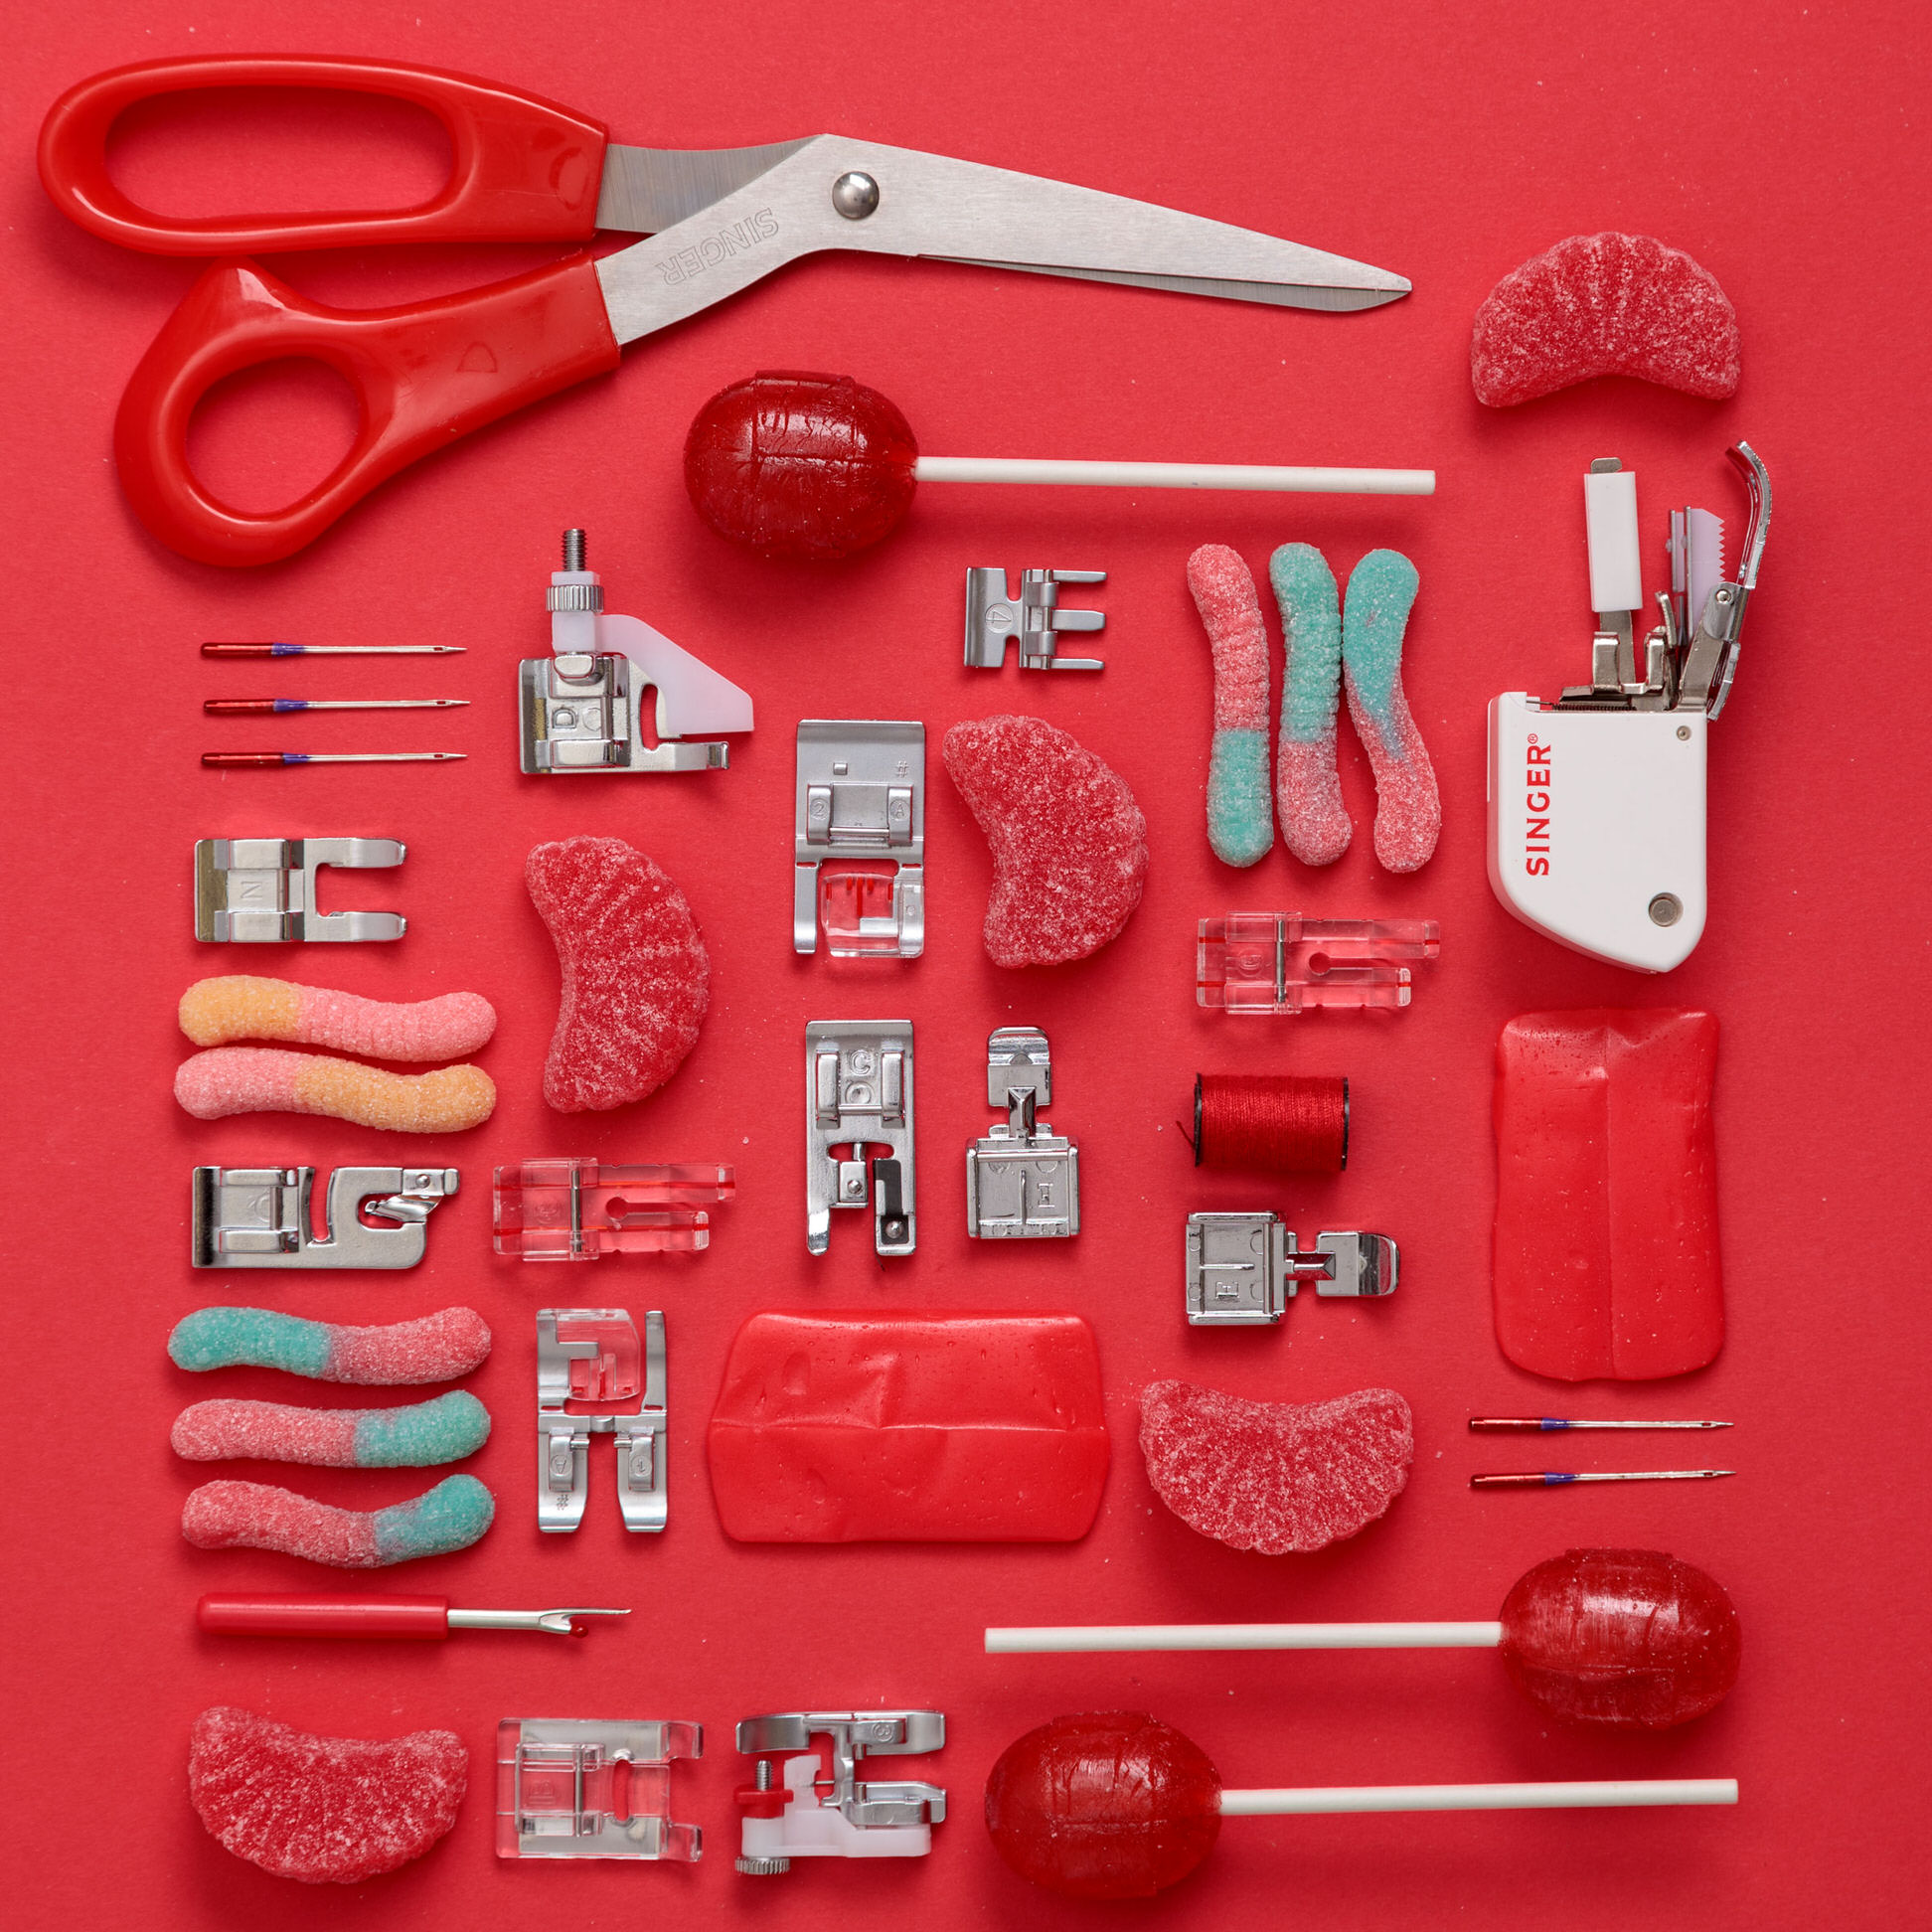 Flatlay photography for Singer Sewing Company